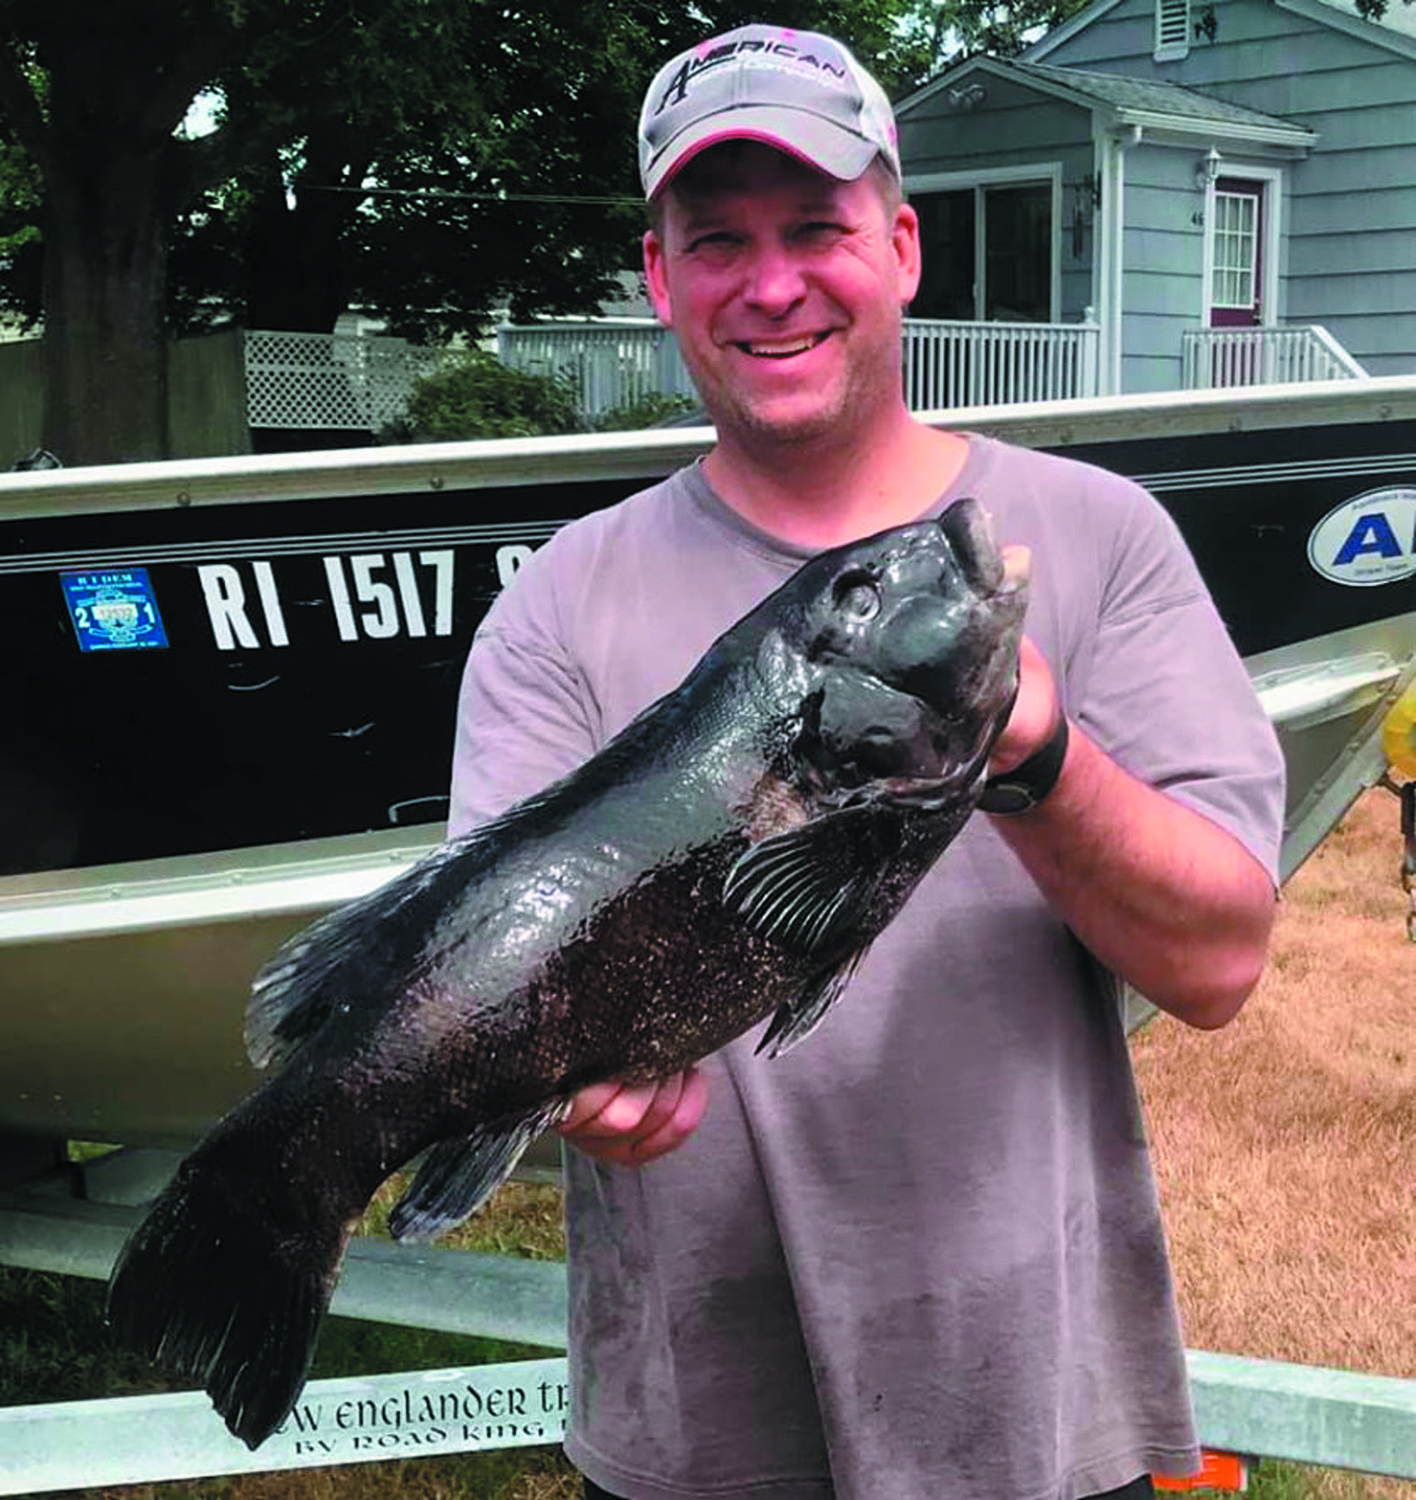 TAUTOG BITE: Ted Zack of Aquidneck Island Rod Builders with the 24-inch tautog he caught this weekend. The tautog season opened August 1 with a 16-inch, three fish/person/day limit. Ten fish per boat.